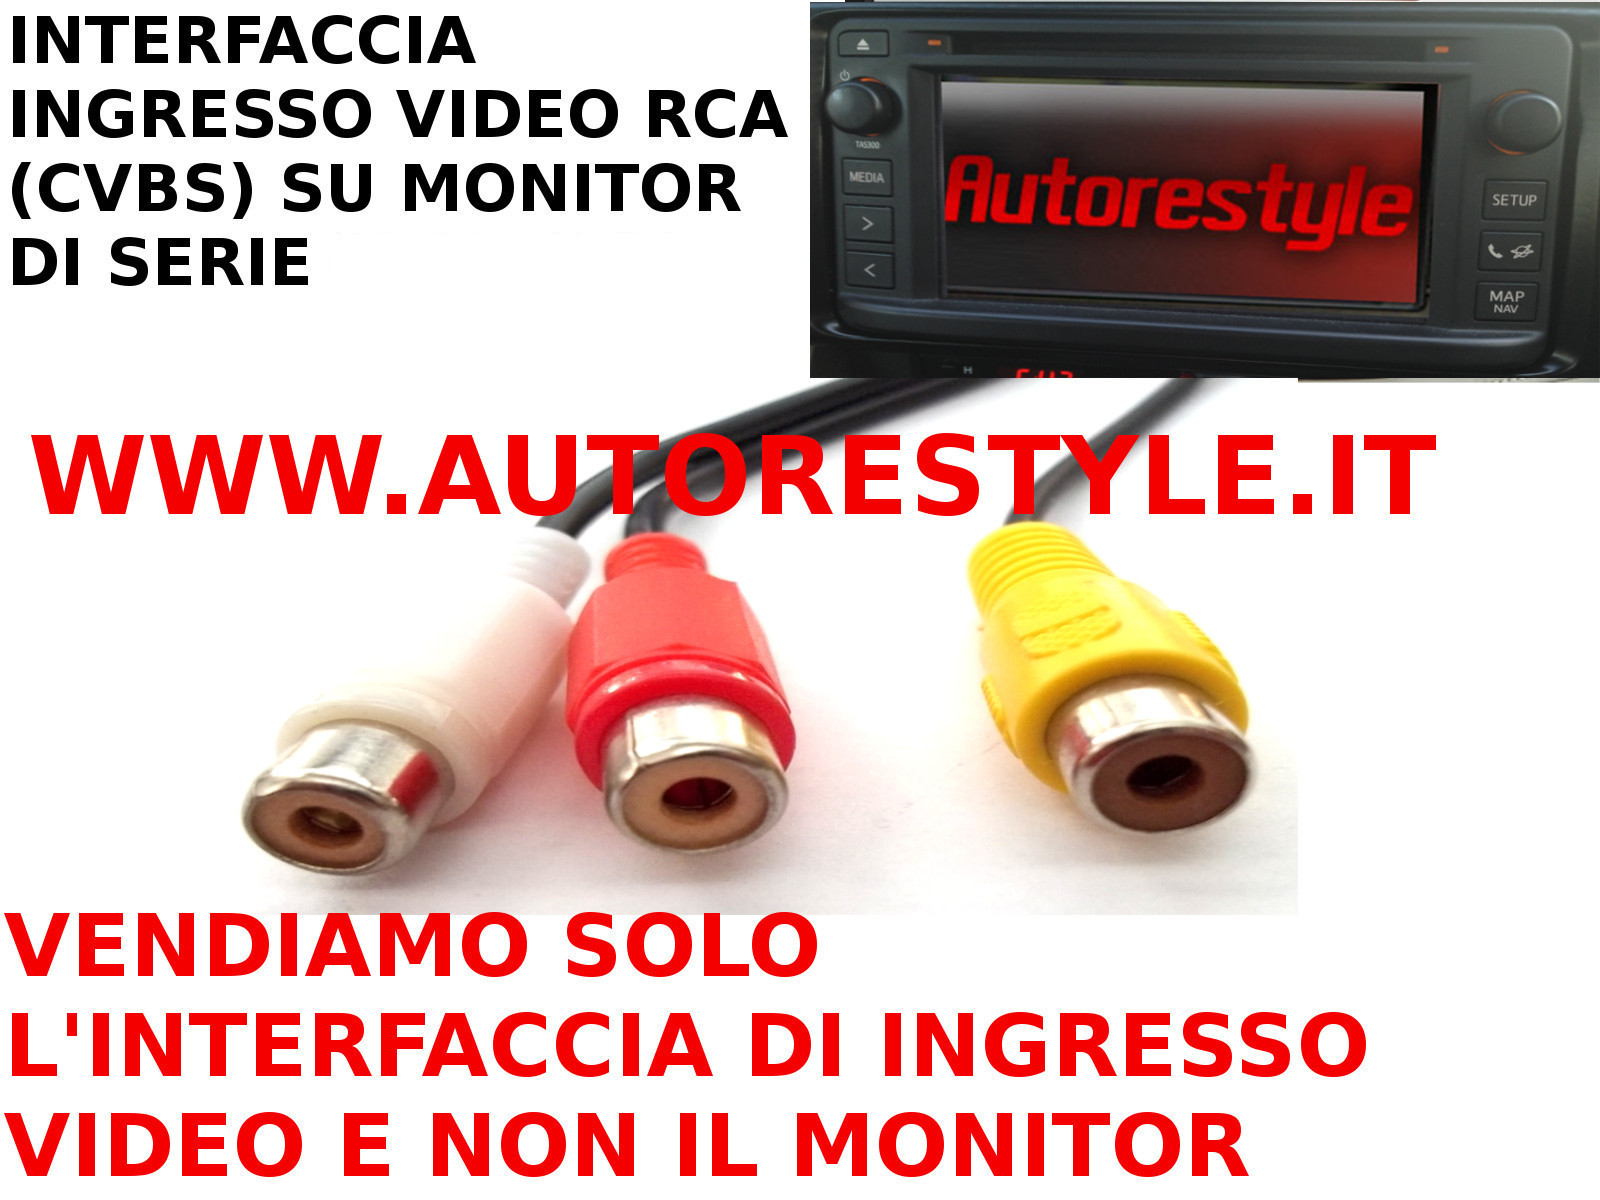 INGRESSO VIDEO COMPOSITO RCA SU MONITOR DI SERIE SUBARU BRZ IMPREZA FORESTER DAL 2012 CON TASTO MEDIA